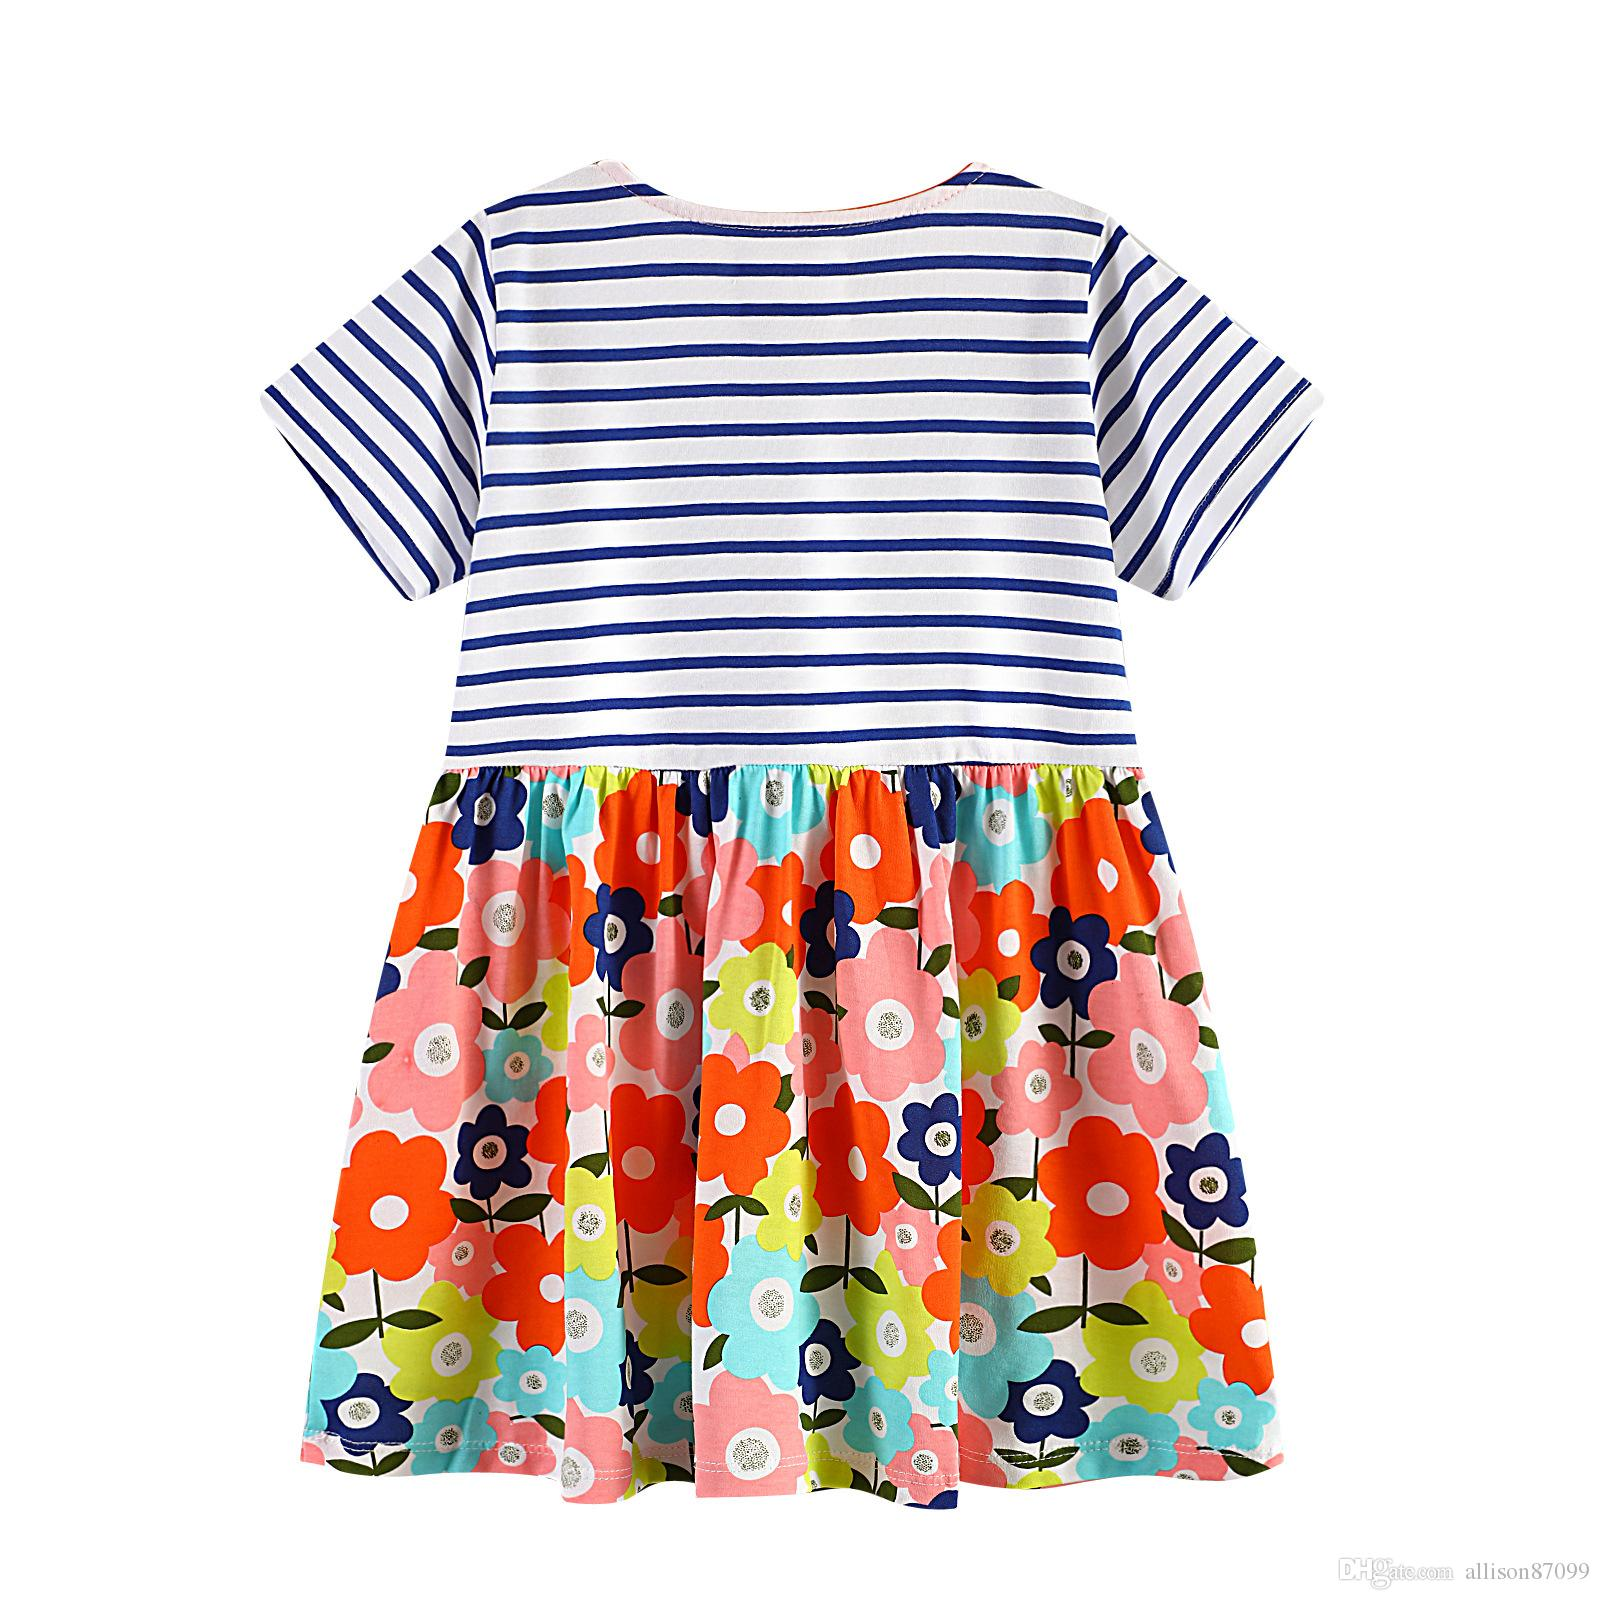 2019 Boutique European and America style Floral Dress for girl Striped Short sleeve Flowers Print 100% cotton Wholesale Kids clothing 18M-6T